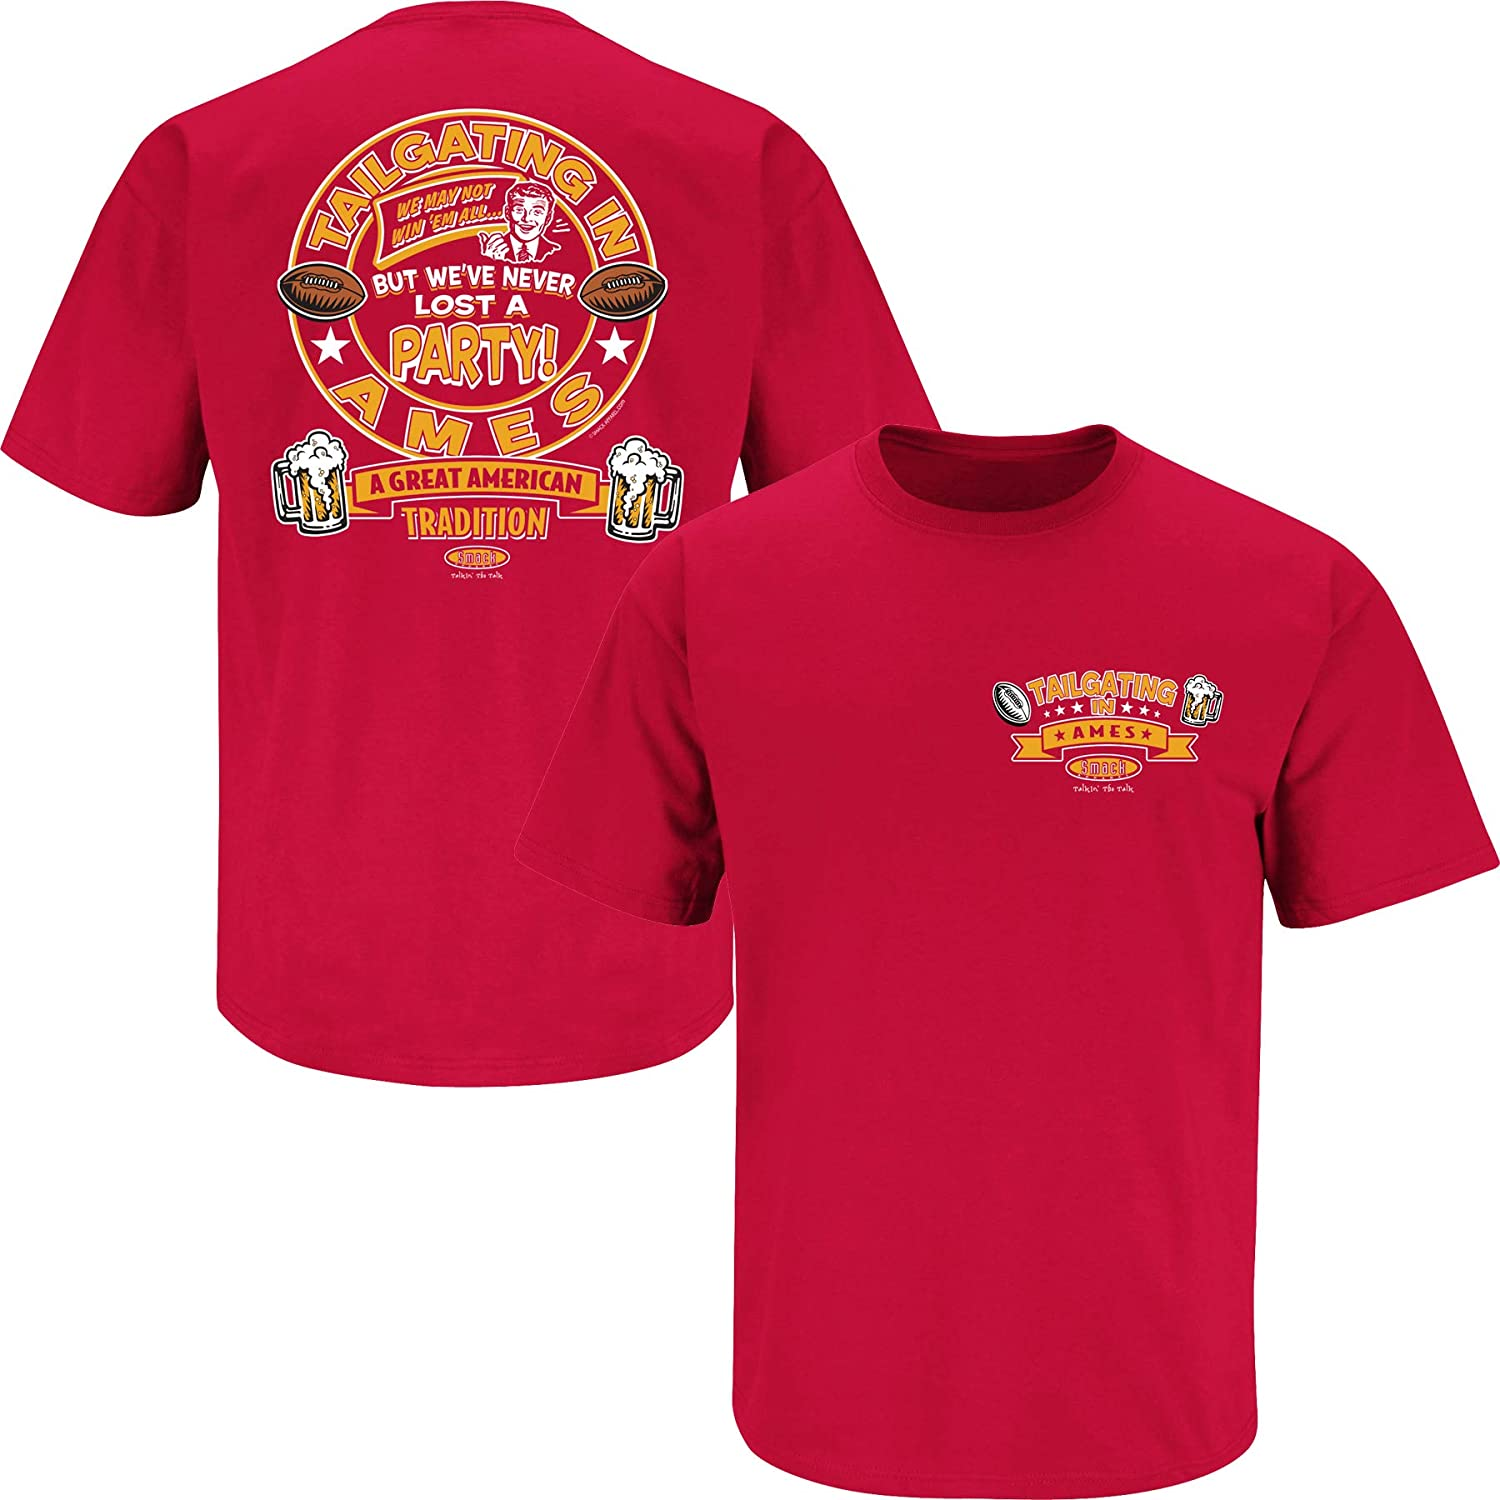 Tailgating in Ames Red T-Shirt Smack Apparel Iowa State Football Fans Sm-5X